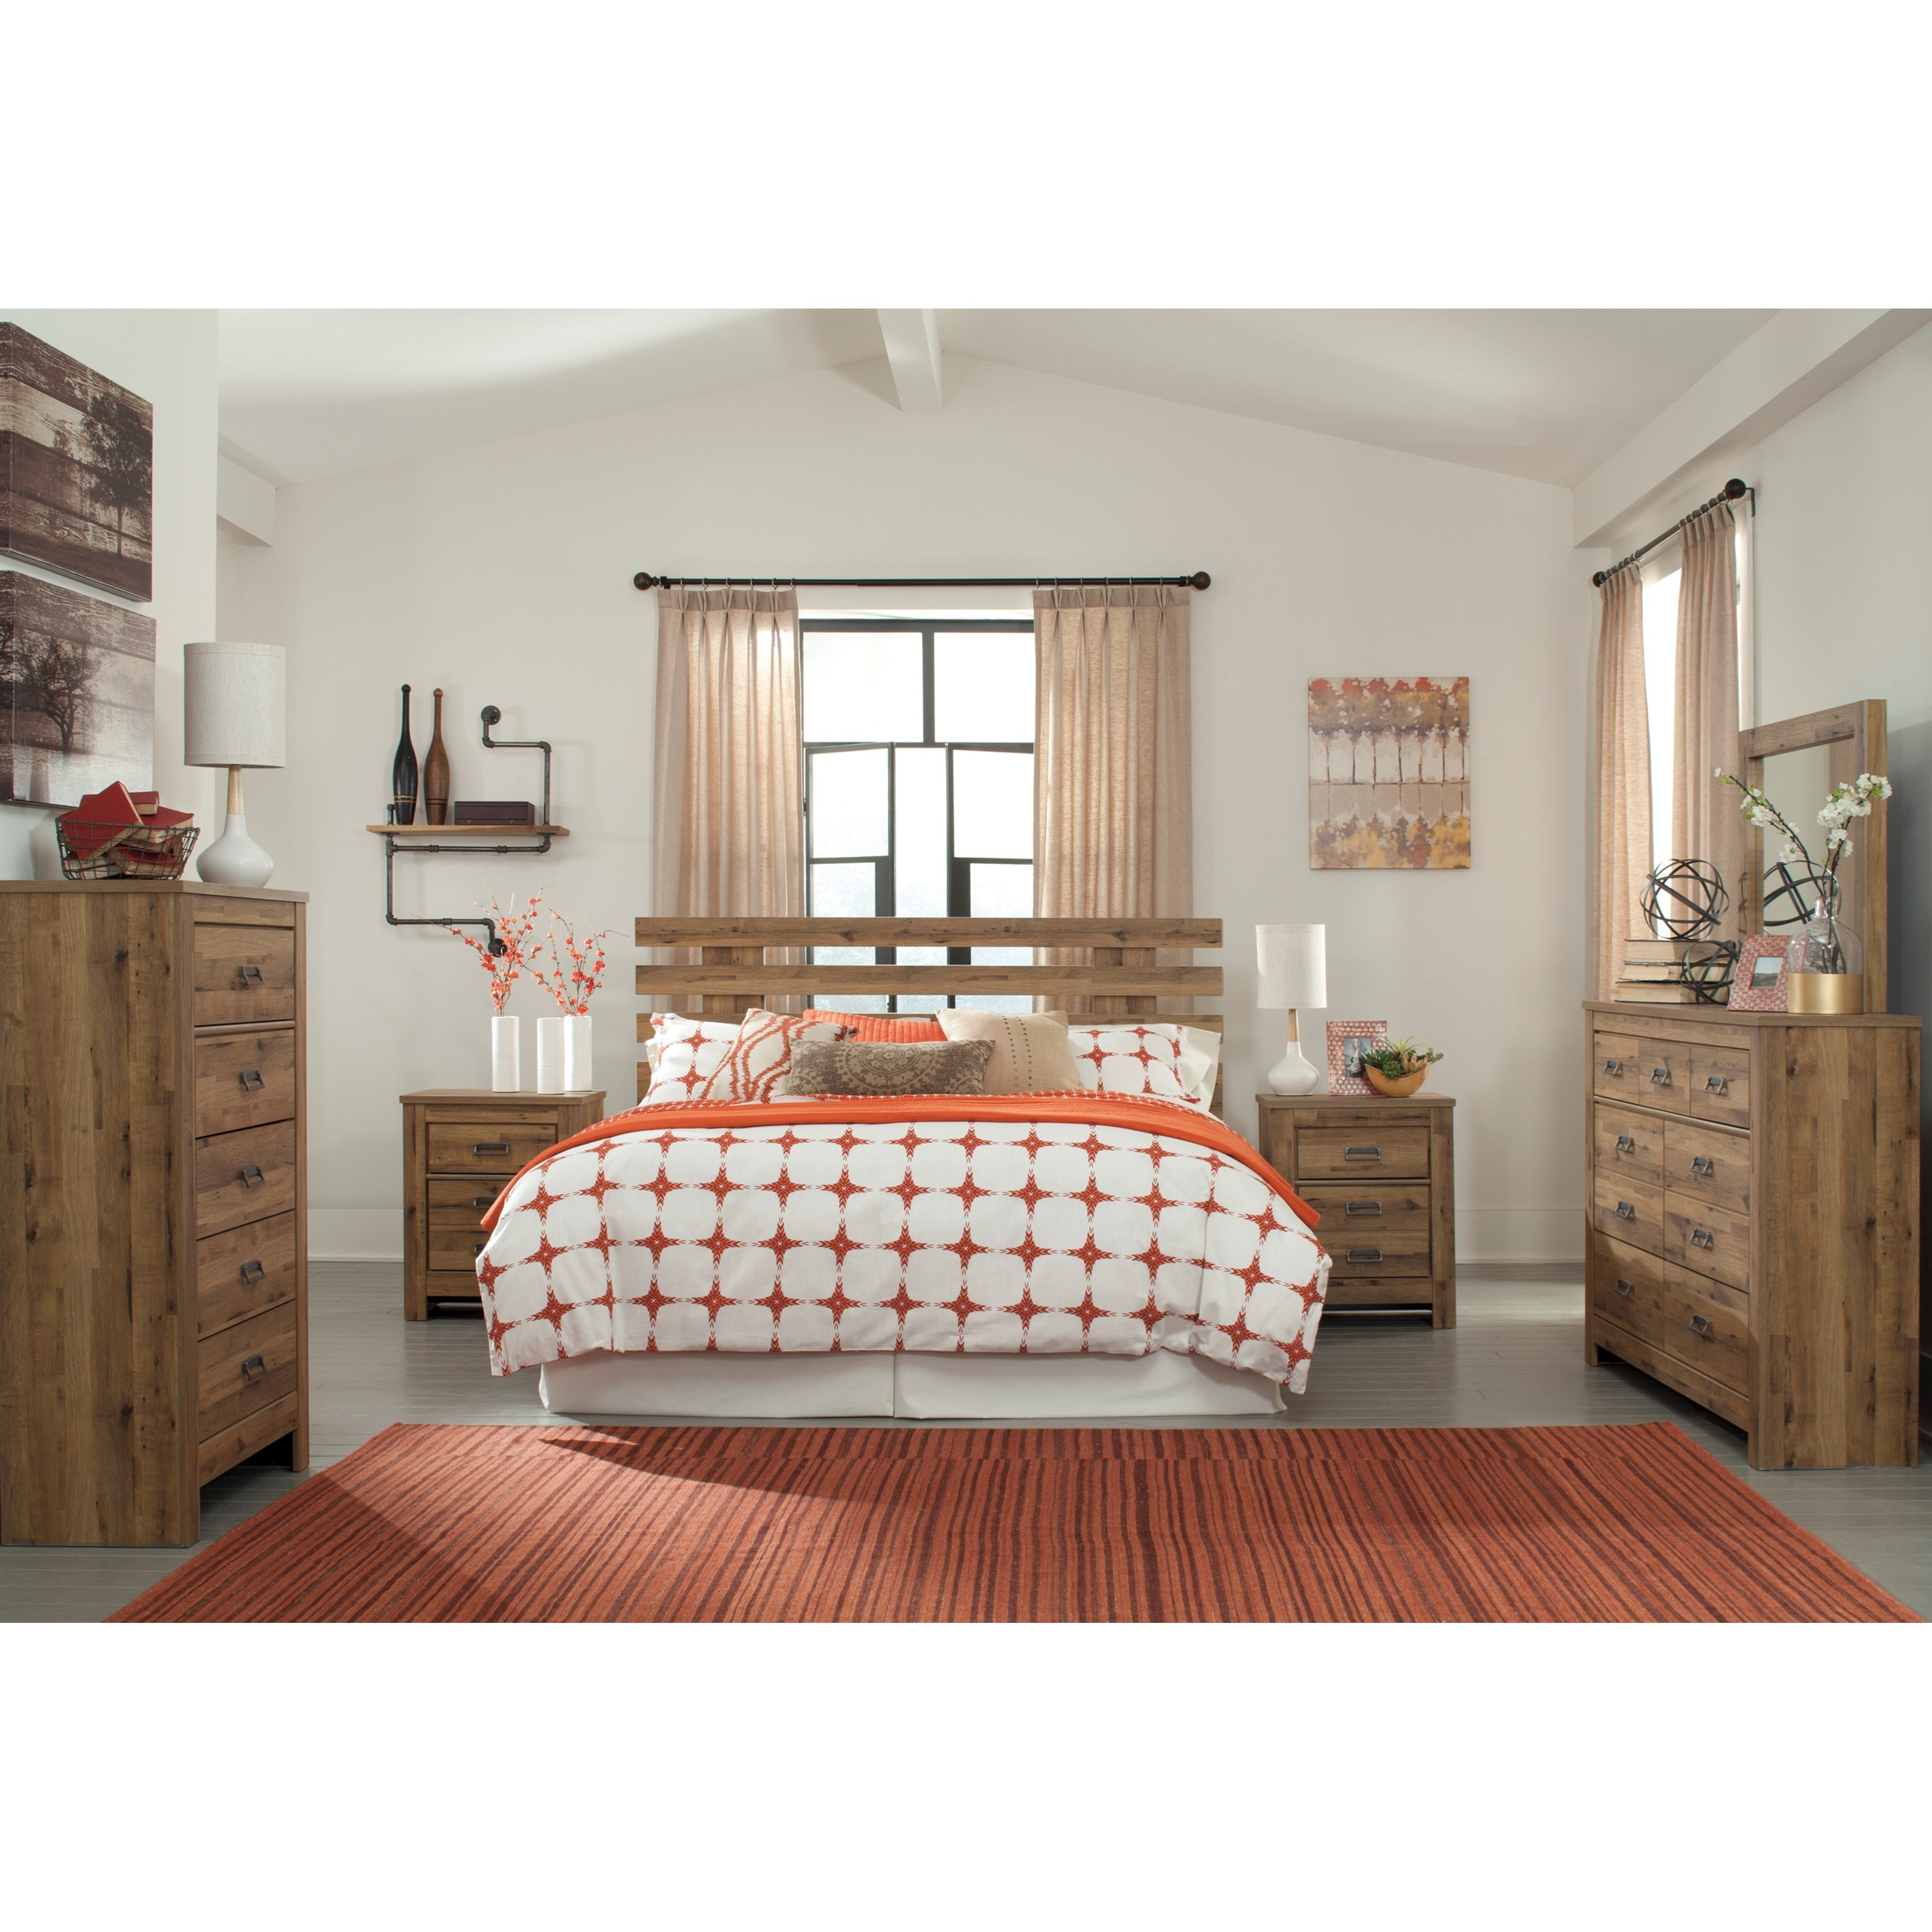 Signature design by ashley cinrey king bedroom group for Bedroom furniture groups